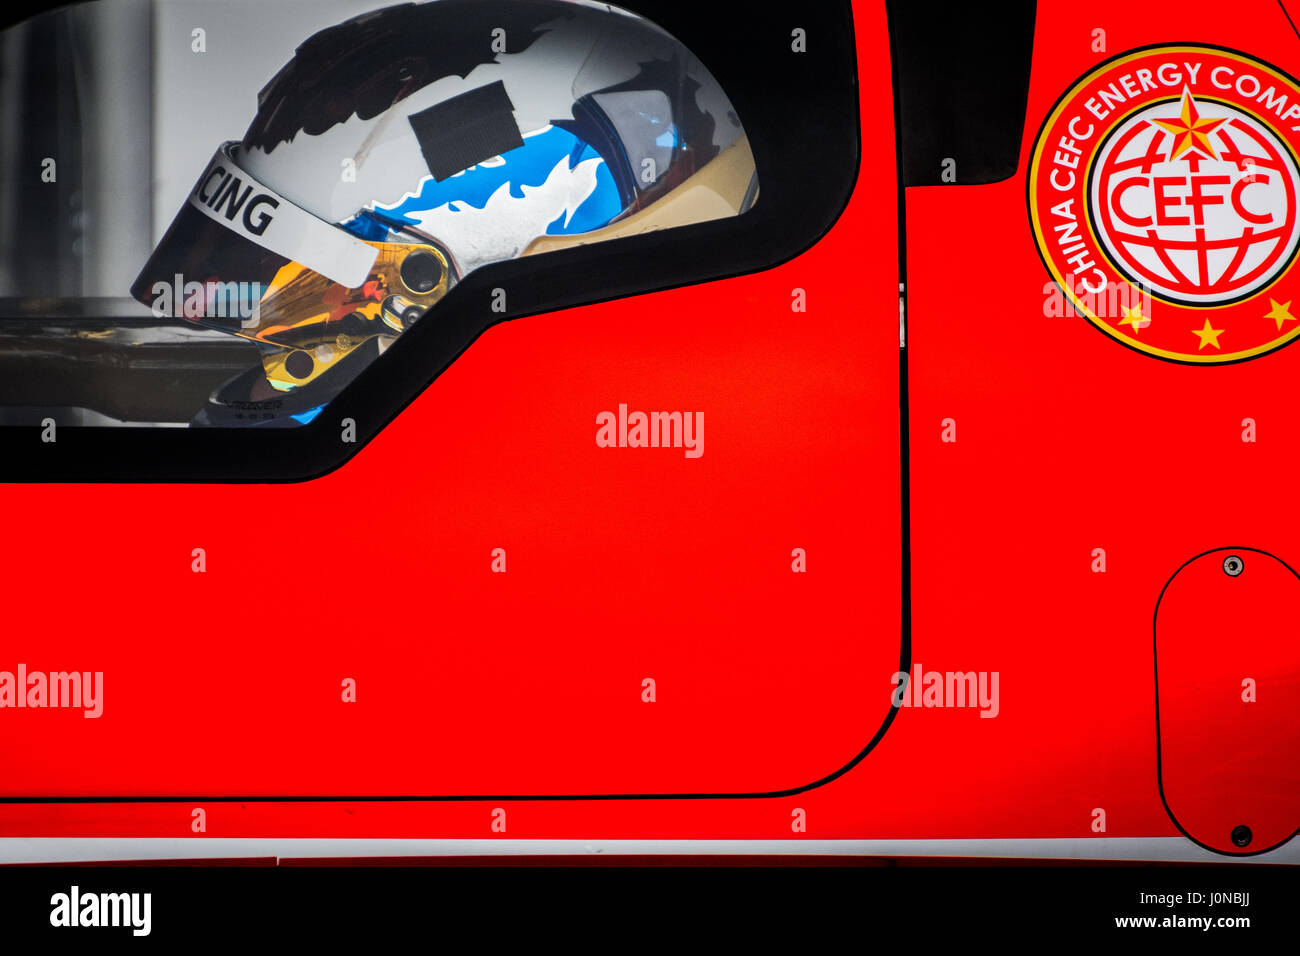 Towcester, Northamptonshire, UK. 15th April, 2017. FIA WEC racing driver Vitaly Petrov and CEFC Manor TRS Racing - Stock Image